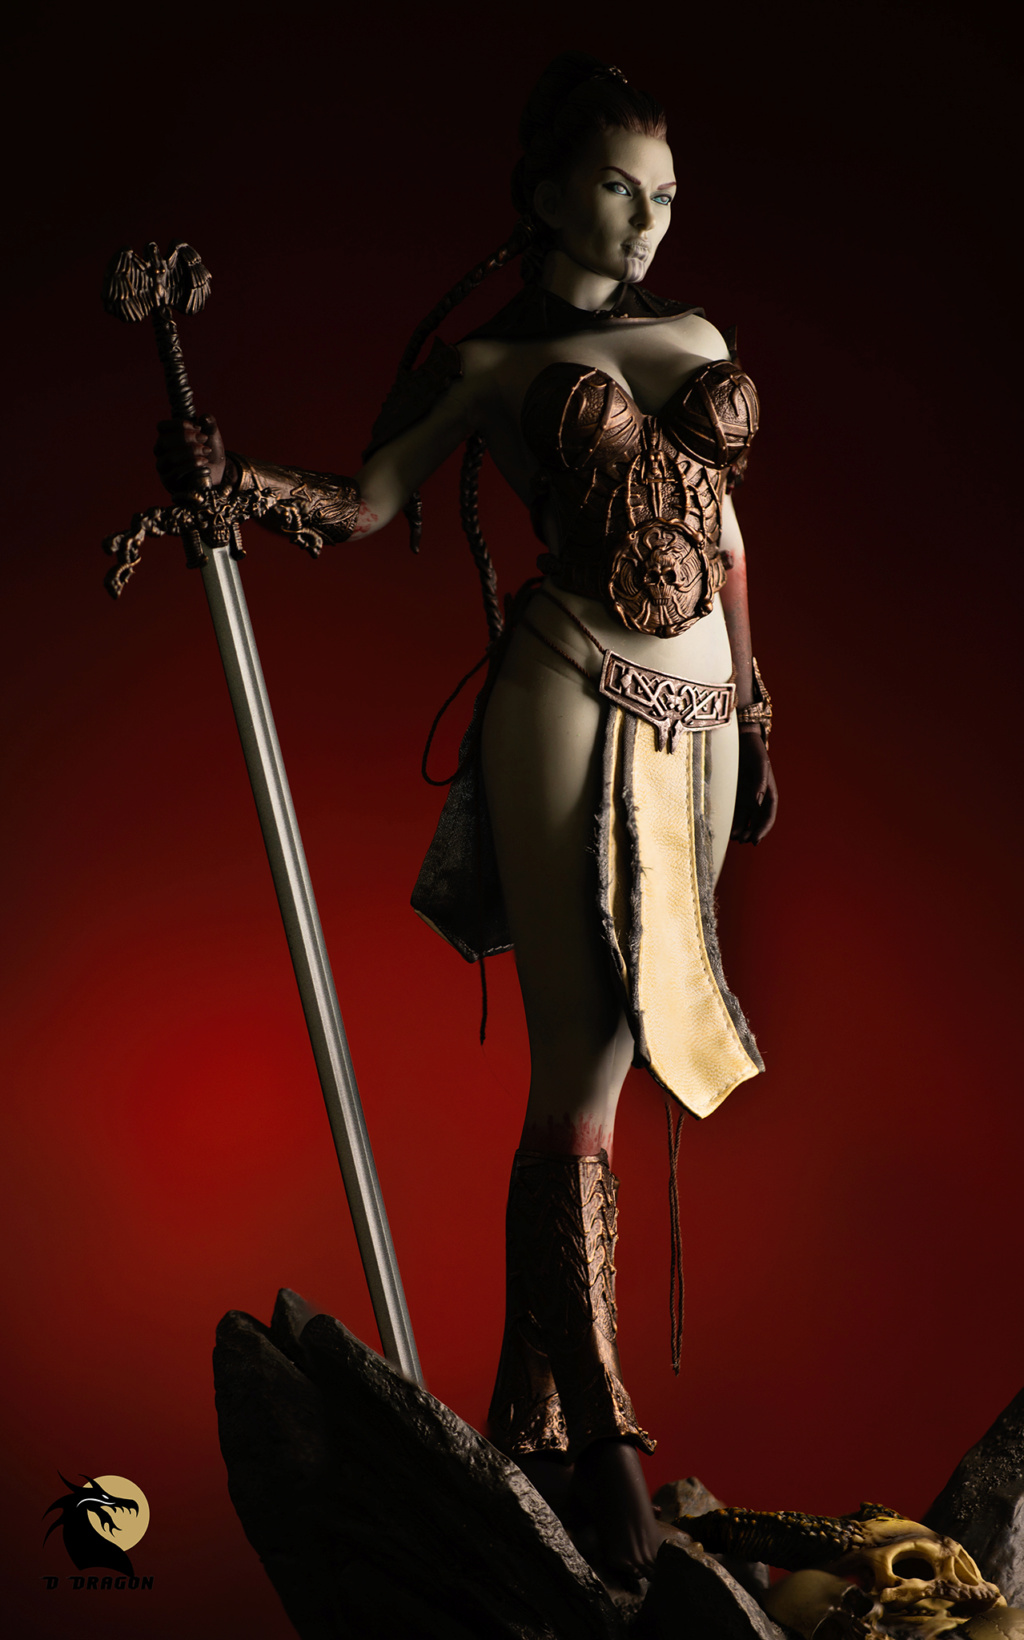 tbleague - NEW PRODUCT: TBLeague & Sideshow: 1/6 Court of the Dead - Valkyrie Cole / Kier movable doll (PL2019-141) Kier_410